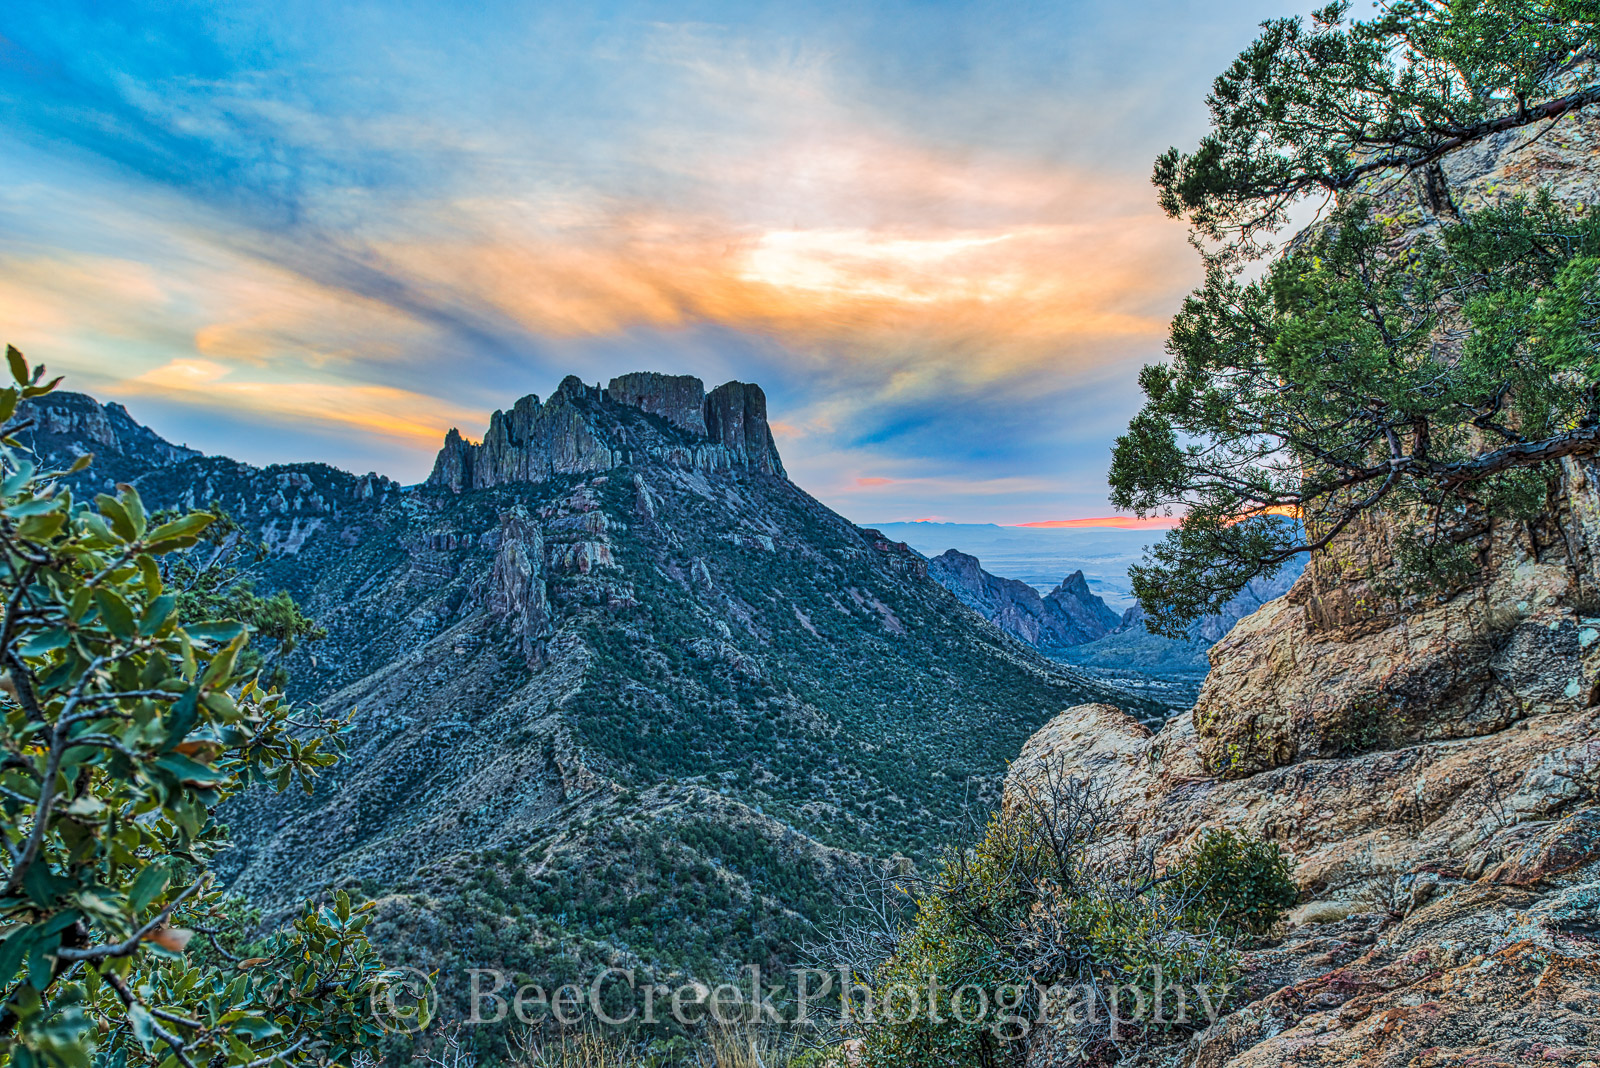 Big Bend National Park, Leisure, Lost mine trail, Mountains, colorful skys, lifestyle, scenic, sunset, texas, tourism, travel, vacation, vista, photo